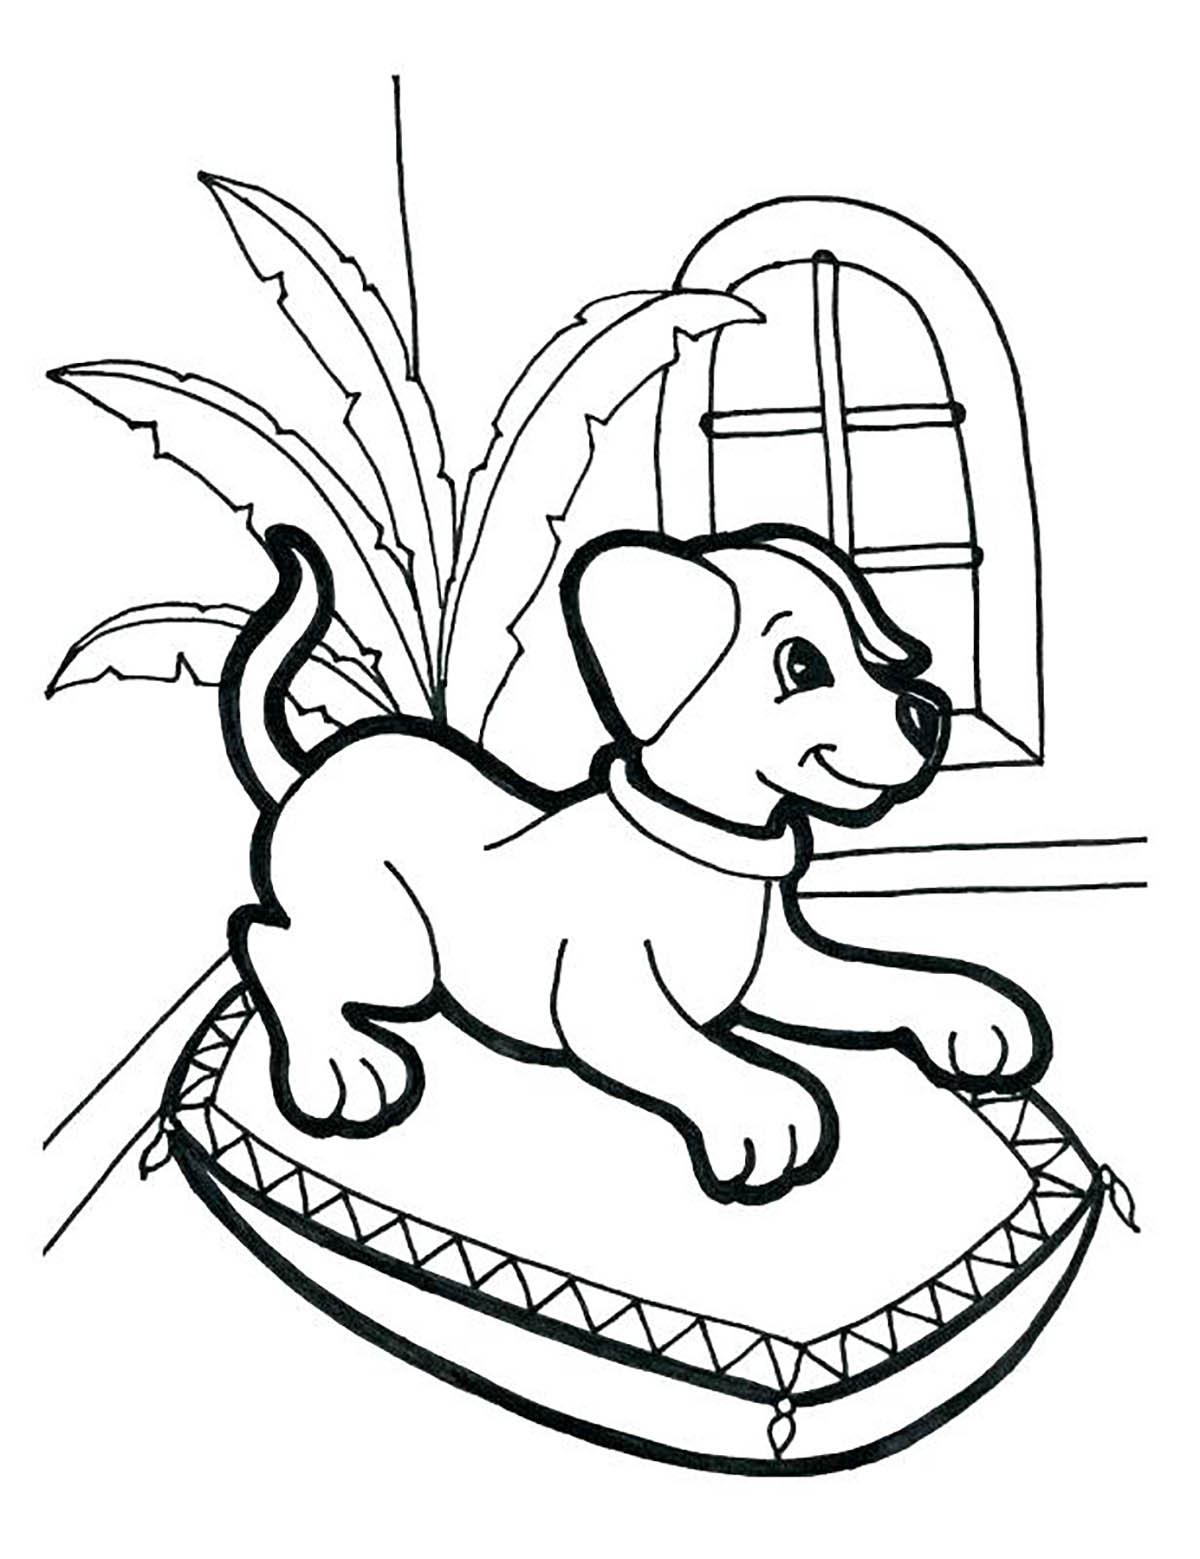 Dogs coloring pages 71